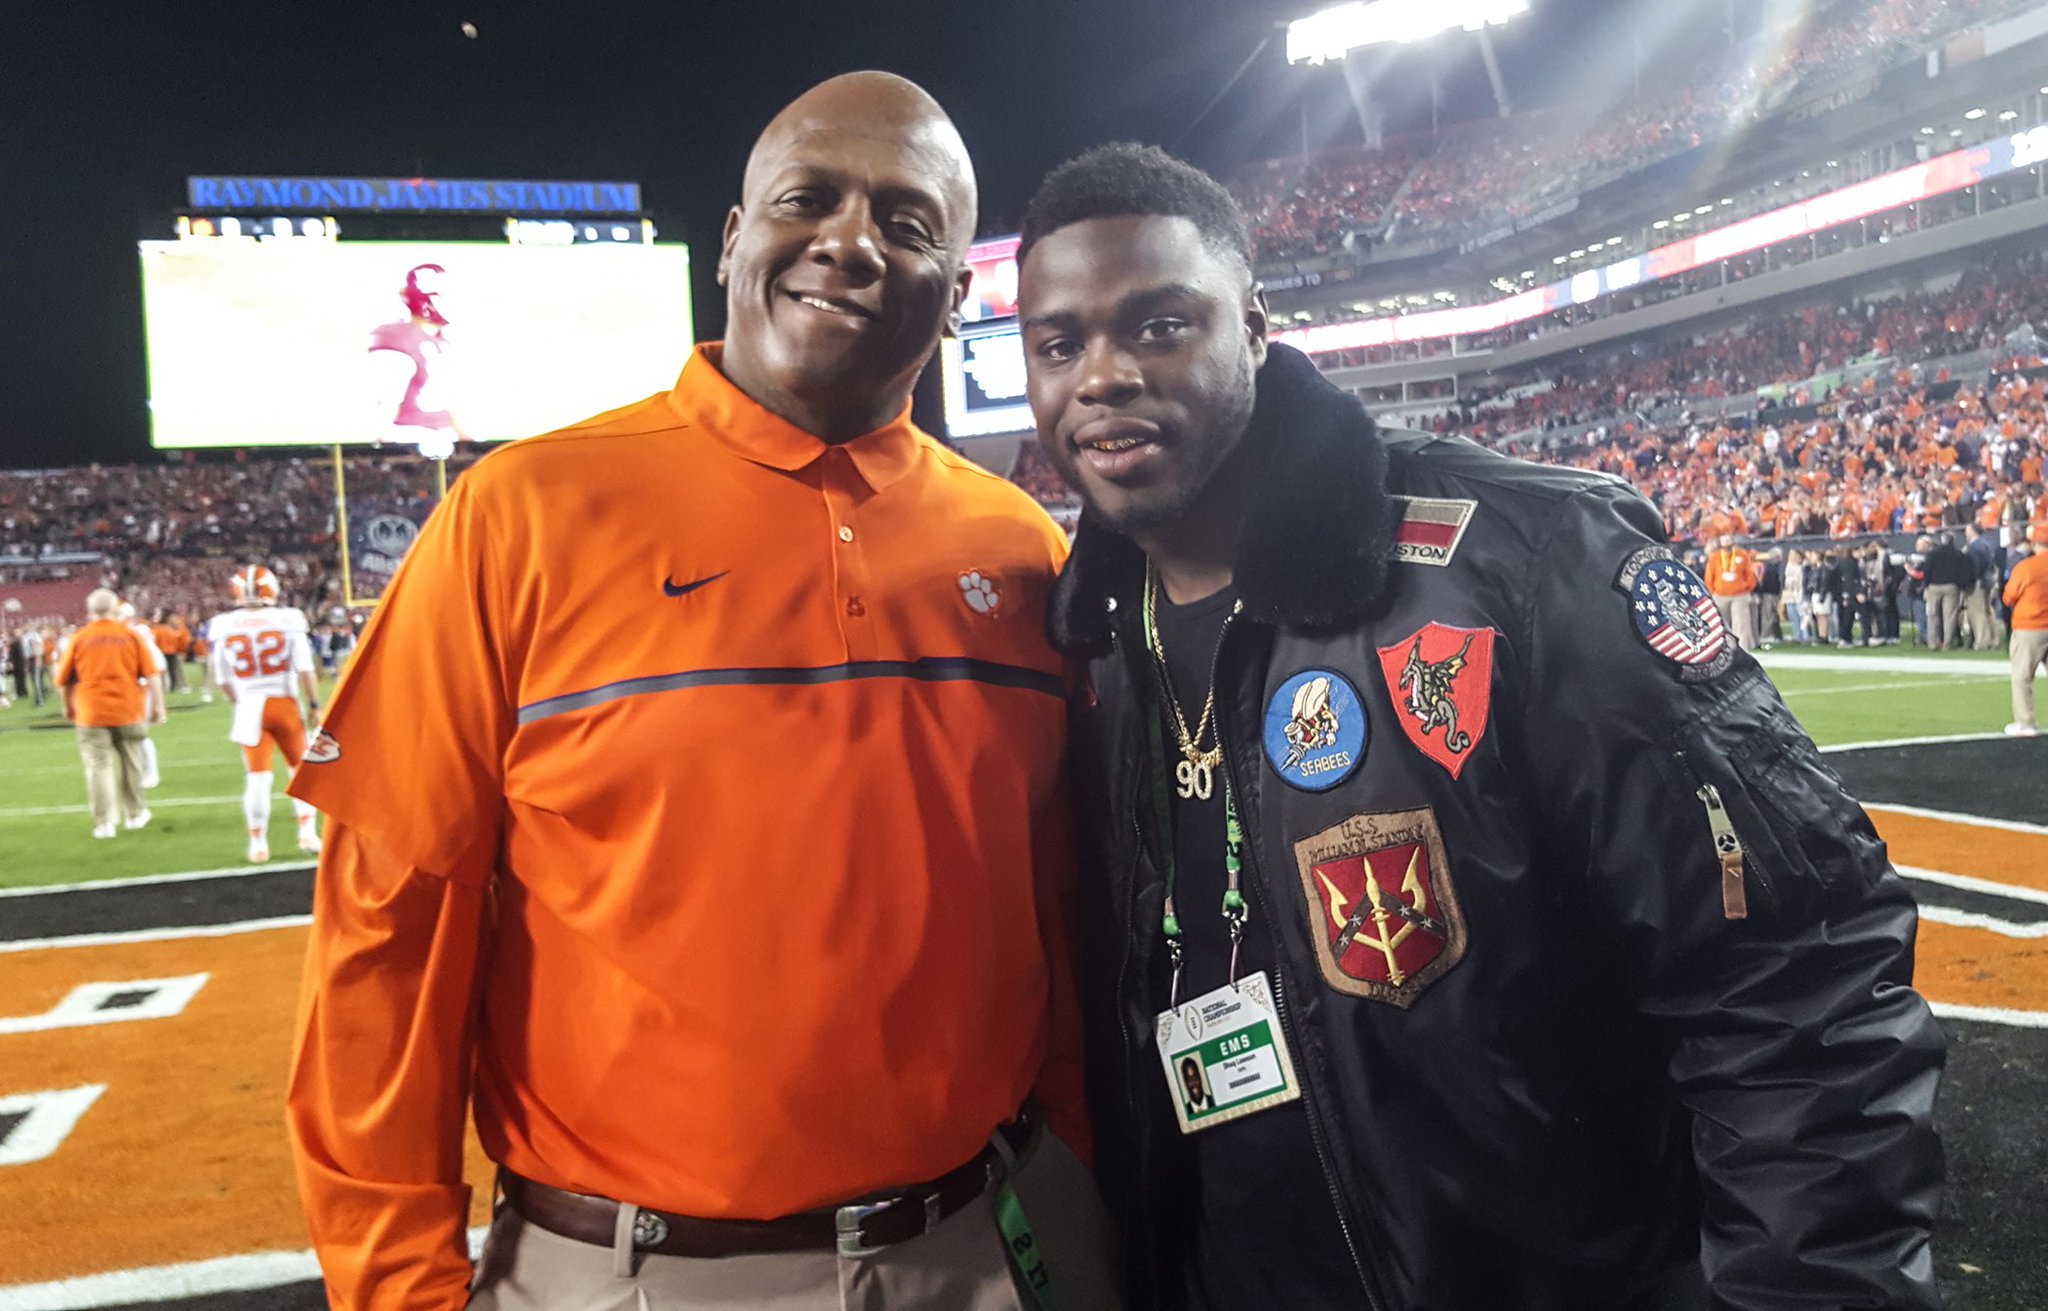 Coach Hobby with @Shaq_Lawson90! #ClemsonFamily https://t.co/u3spgbPN35